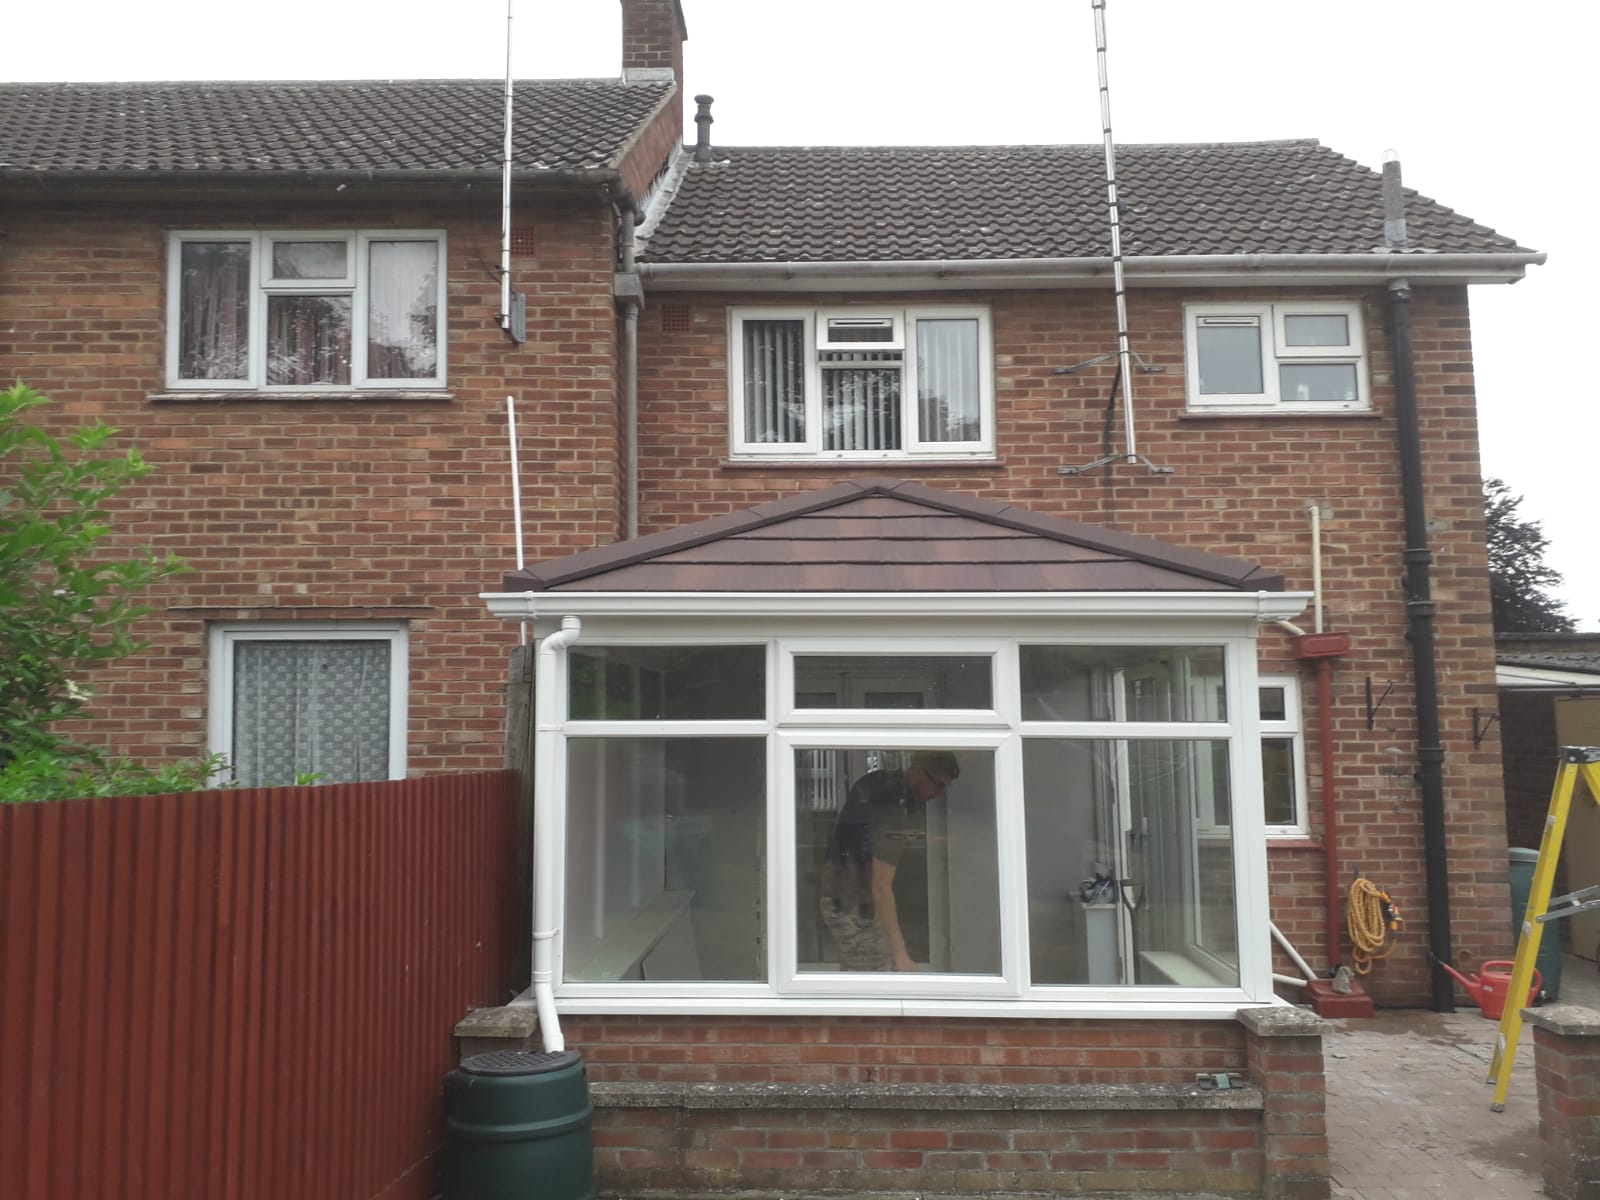 Conservatory Roof Conversion for Mr & Mrs Harris of Newmarket, Suffolk